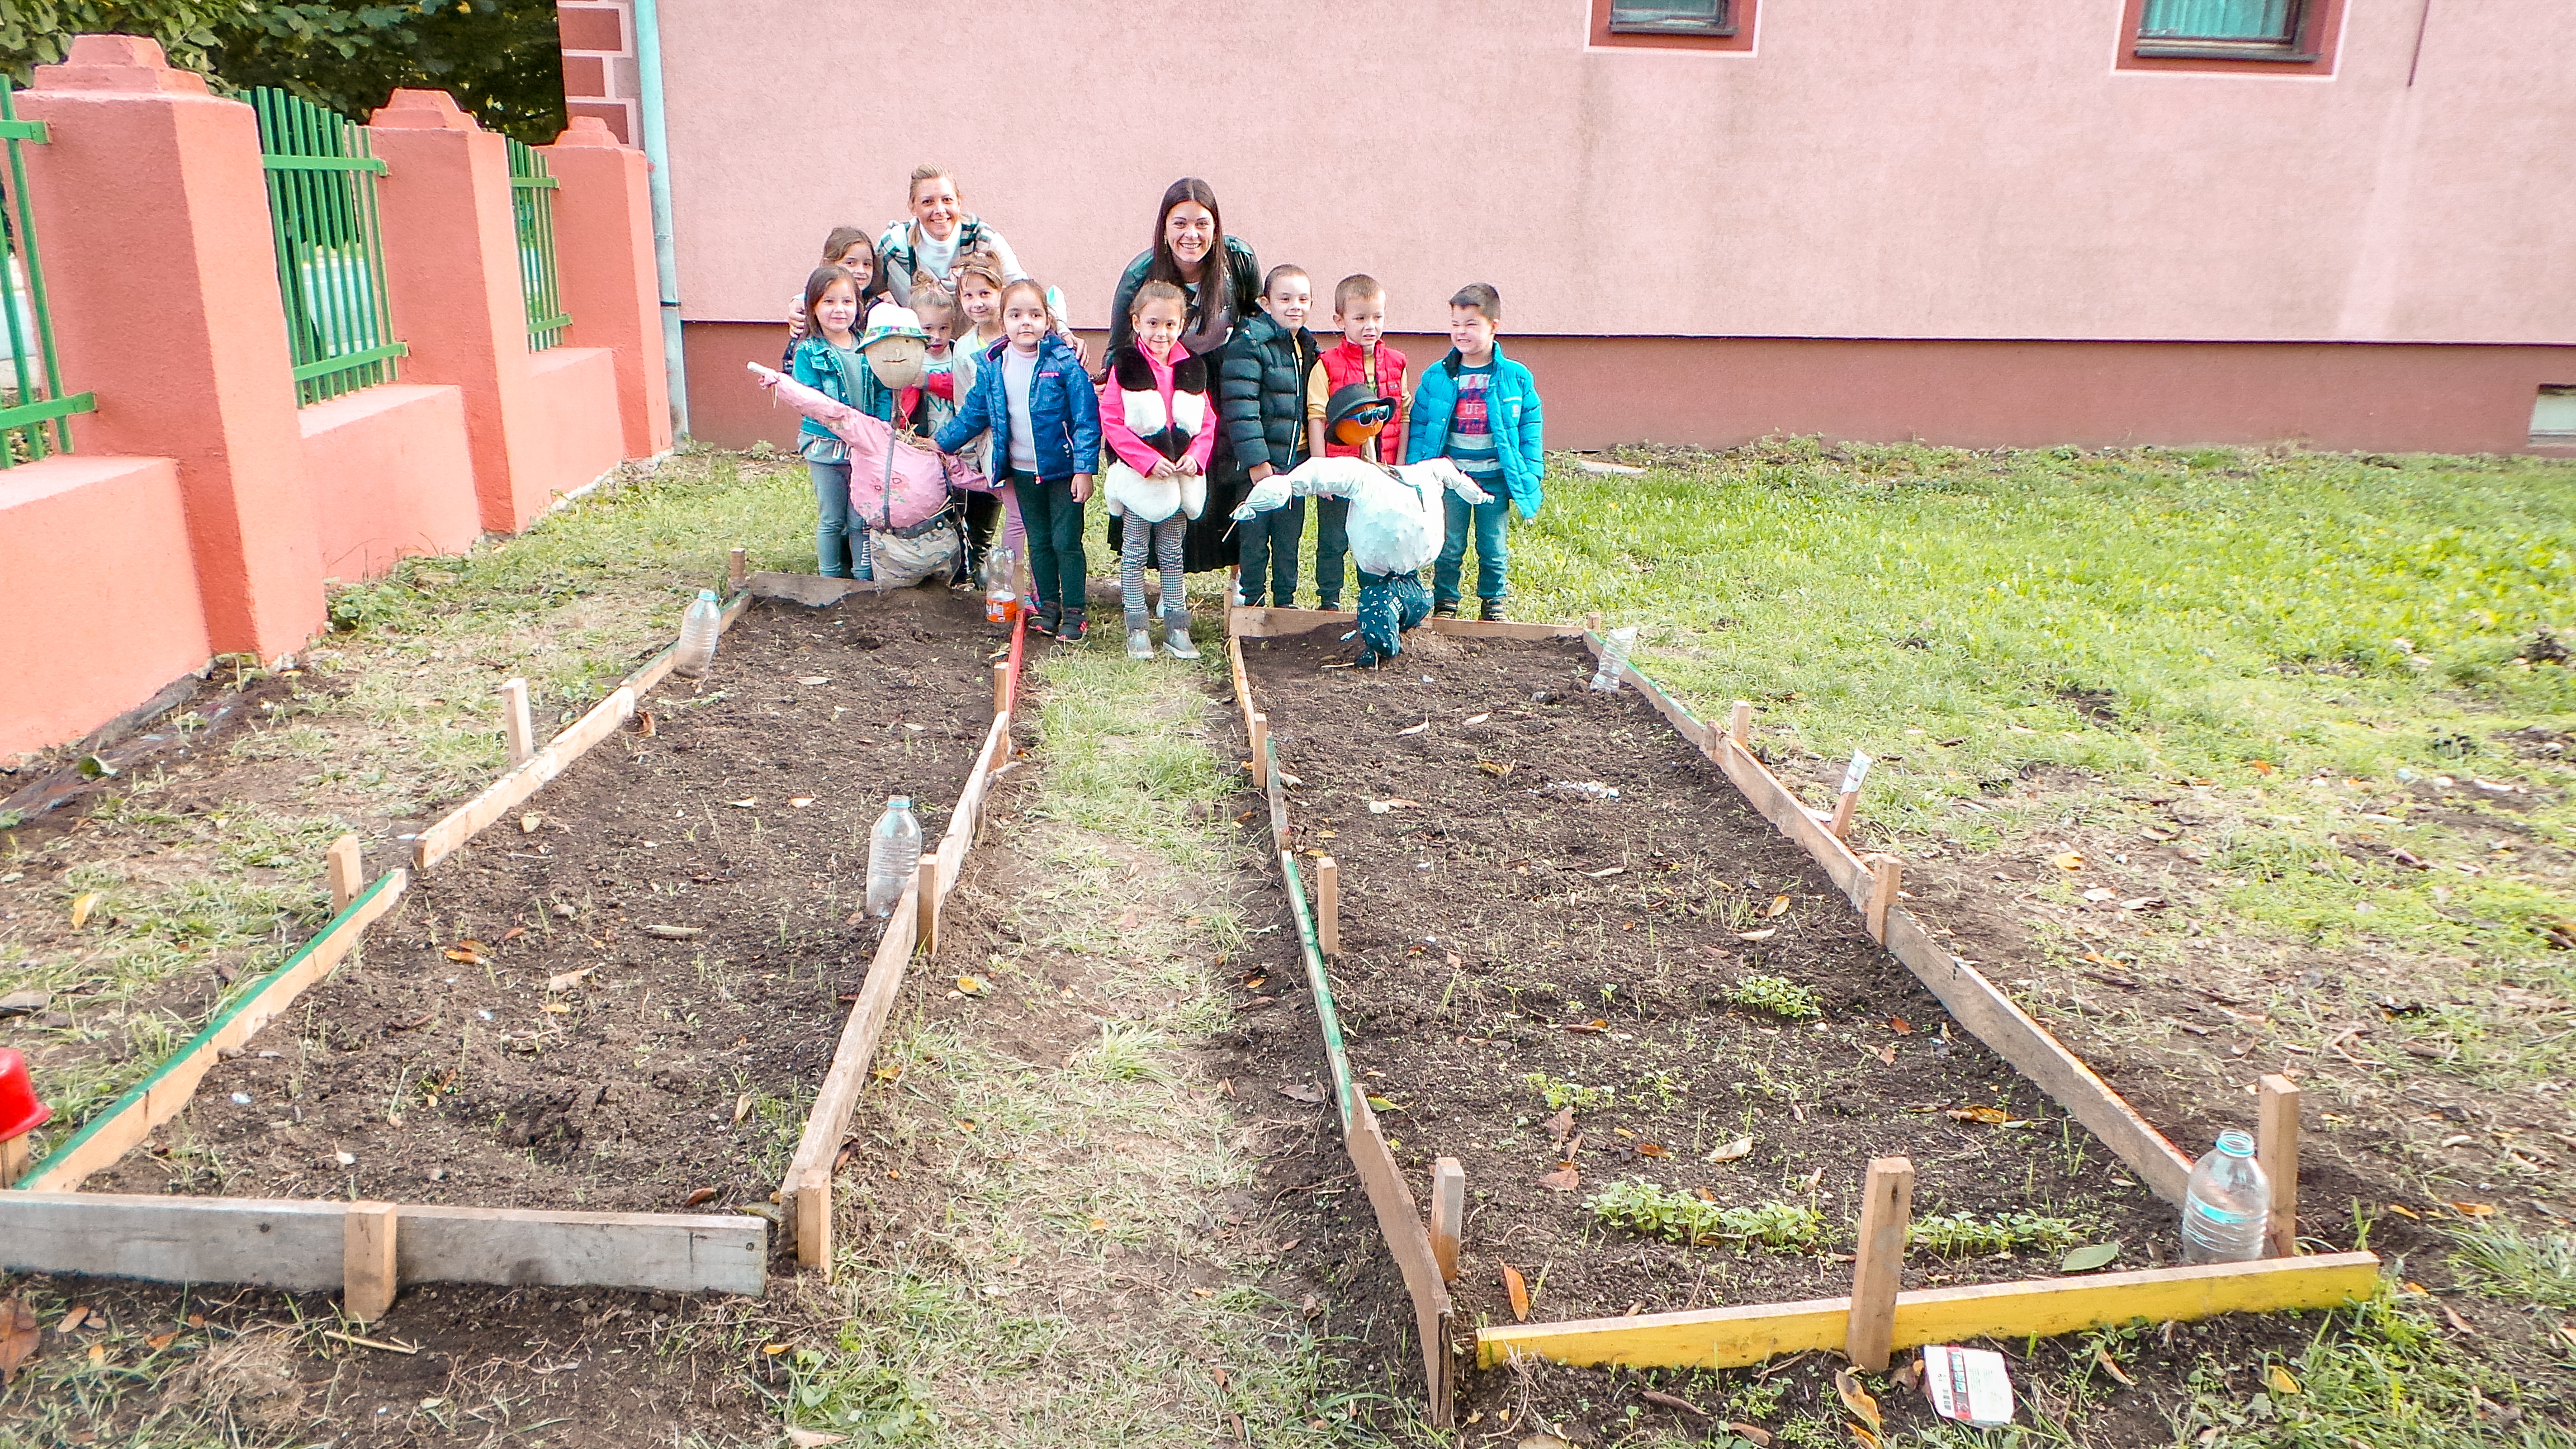 Children from Ljukovo proudly showed Dragana their preschool garden where they grow their own fruits and vegetables with the help of their teachers.